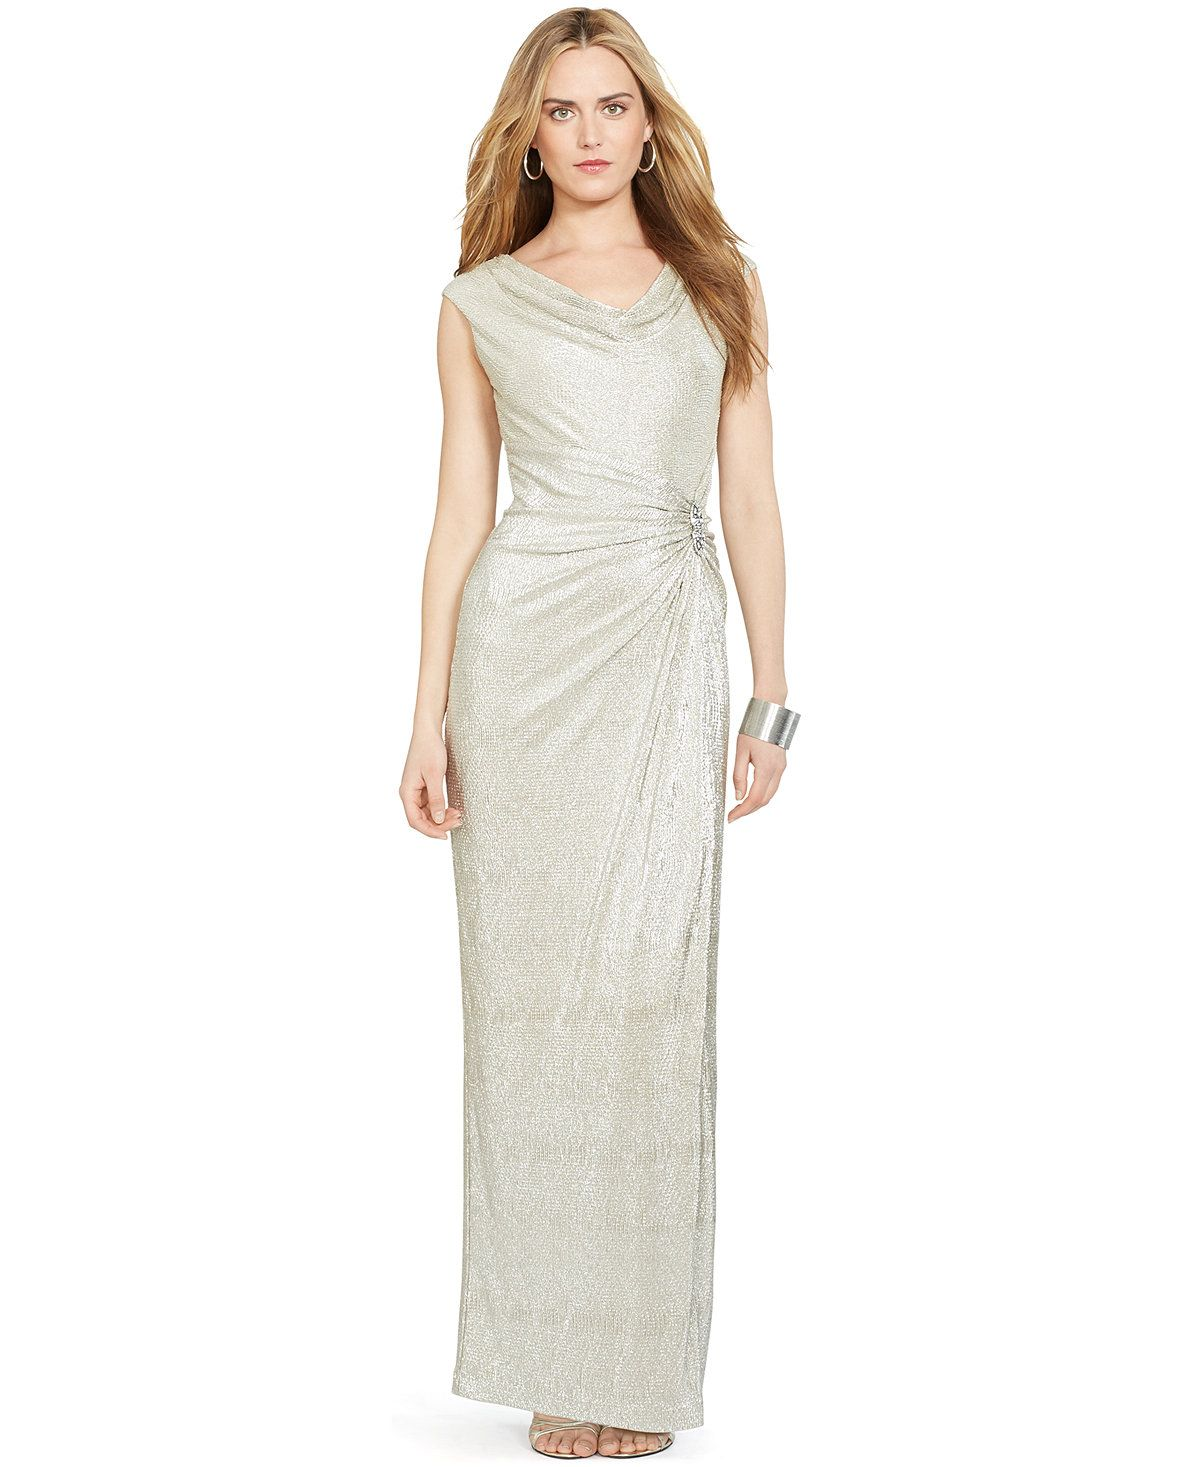 Cowl Neck Wedding Dresses Whimsical: Lauren Ralph Lauren Metallic Cowl-Neck Gown